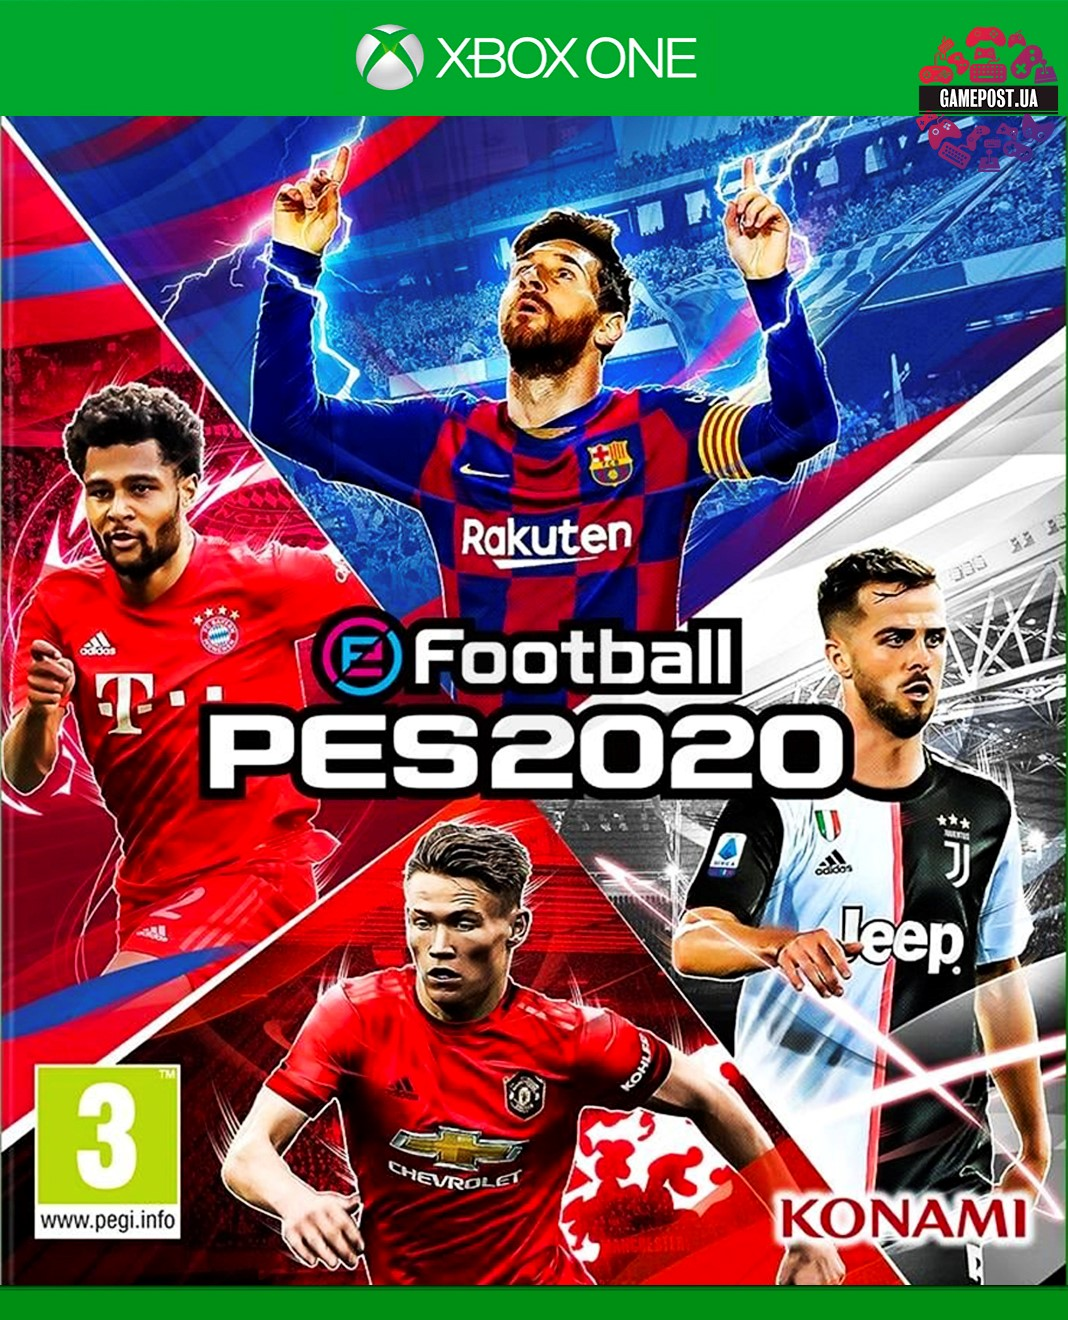 eFootball PES 2020 / XBOX ONE / KEY 🏅🏅🏅